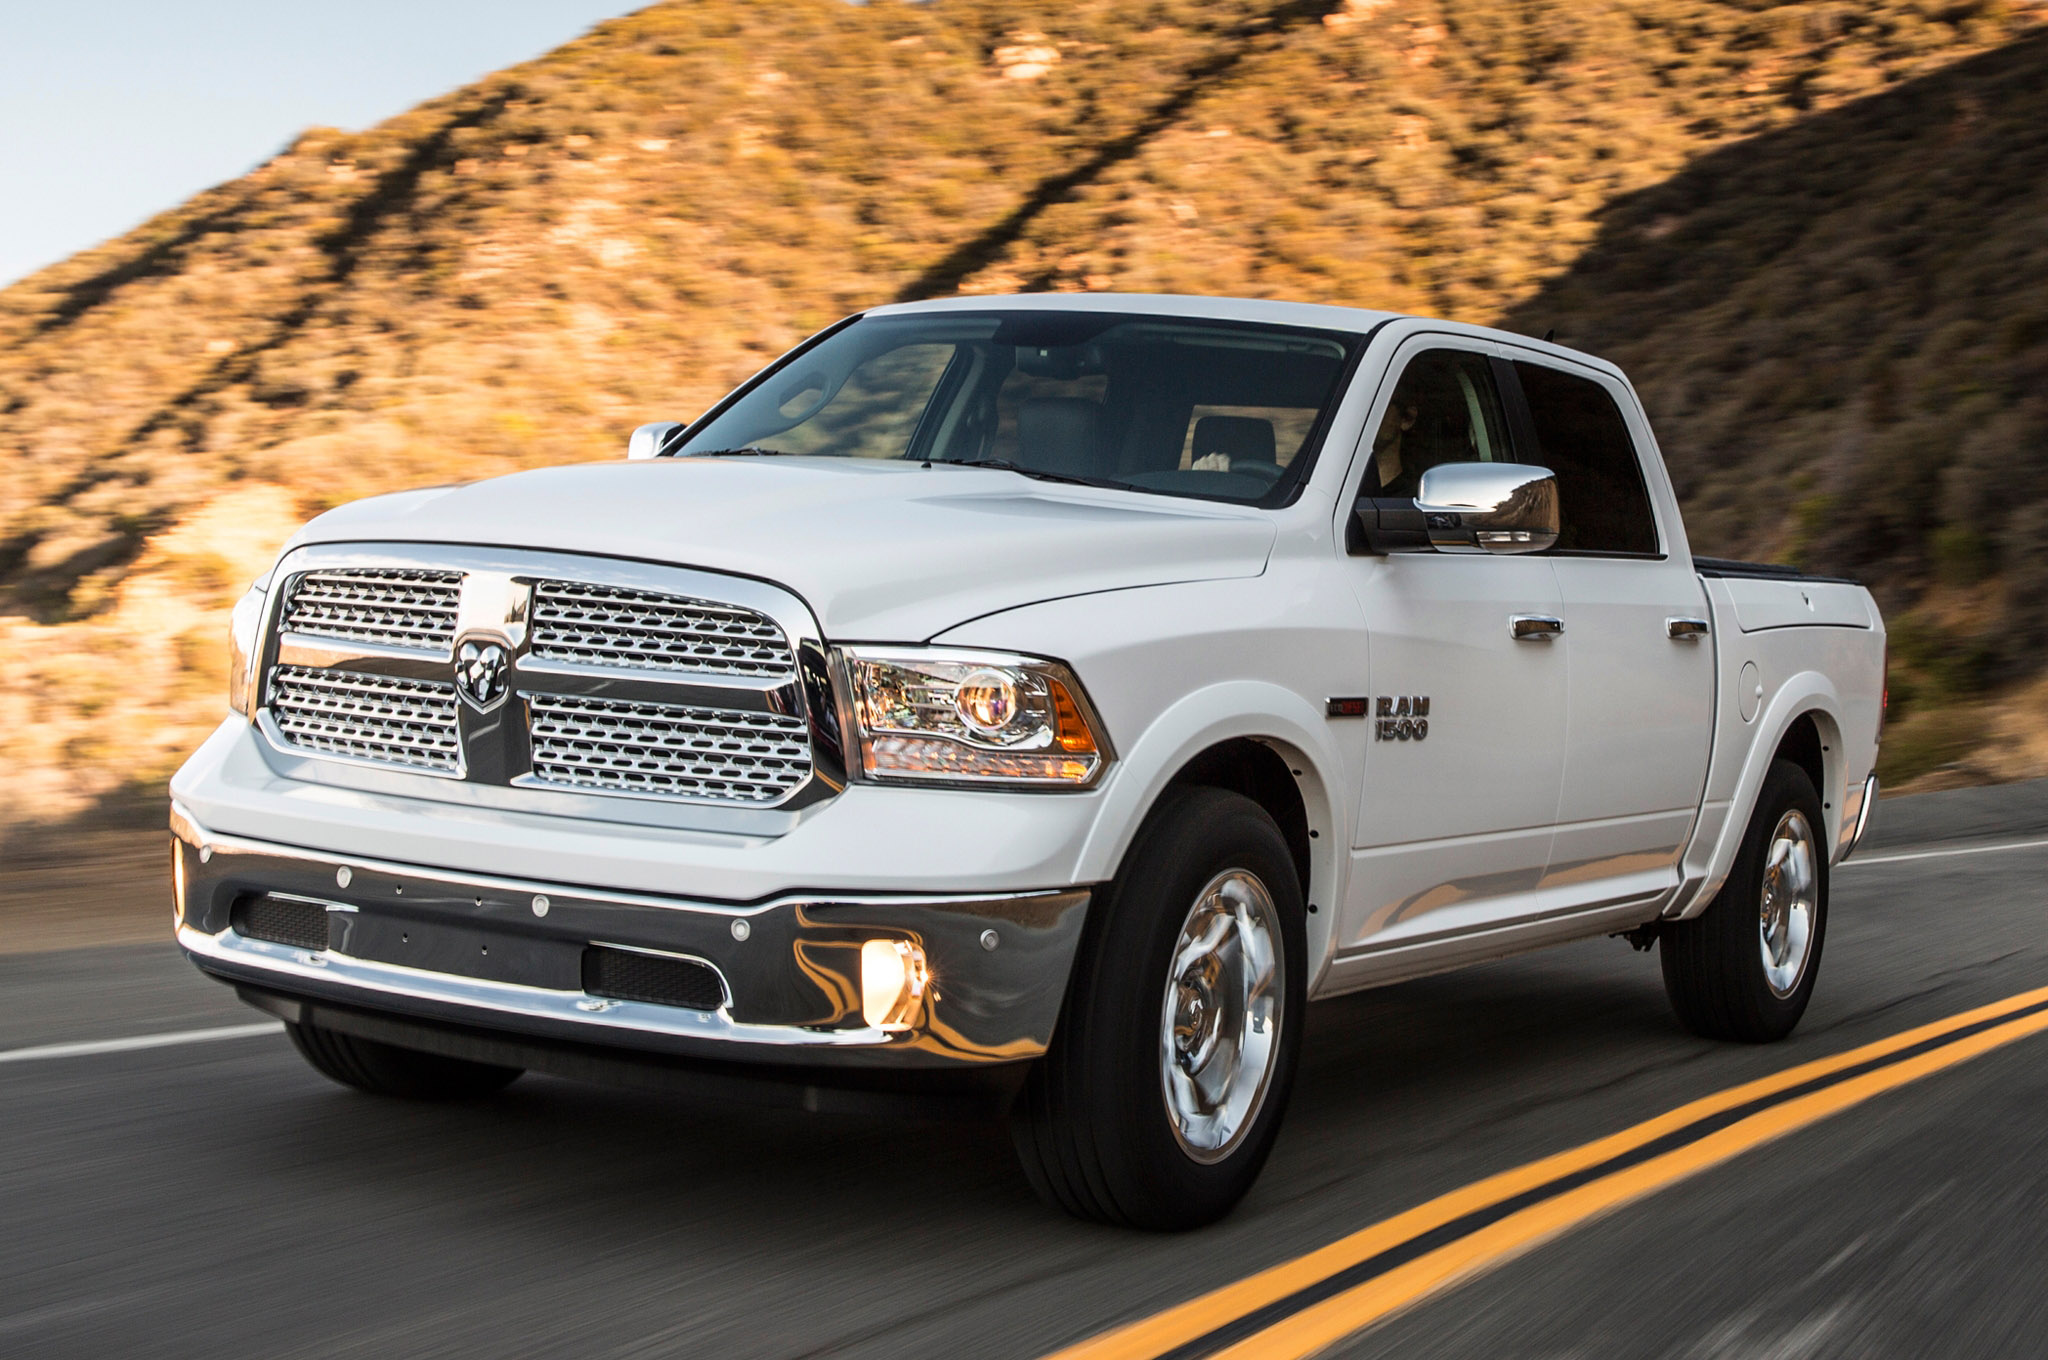 Dodge Ecodiesel For Sale >> 2014 Dodge Ram 1500 EcoDiesel Records Best Fuel Economy Rating